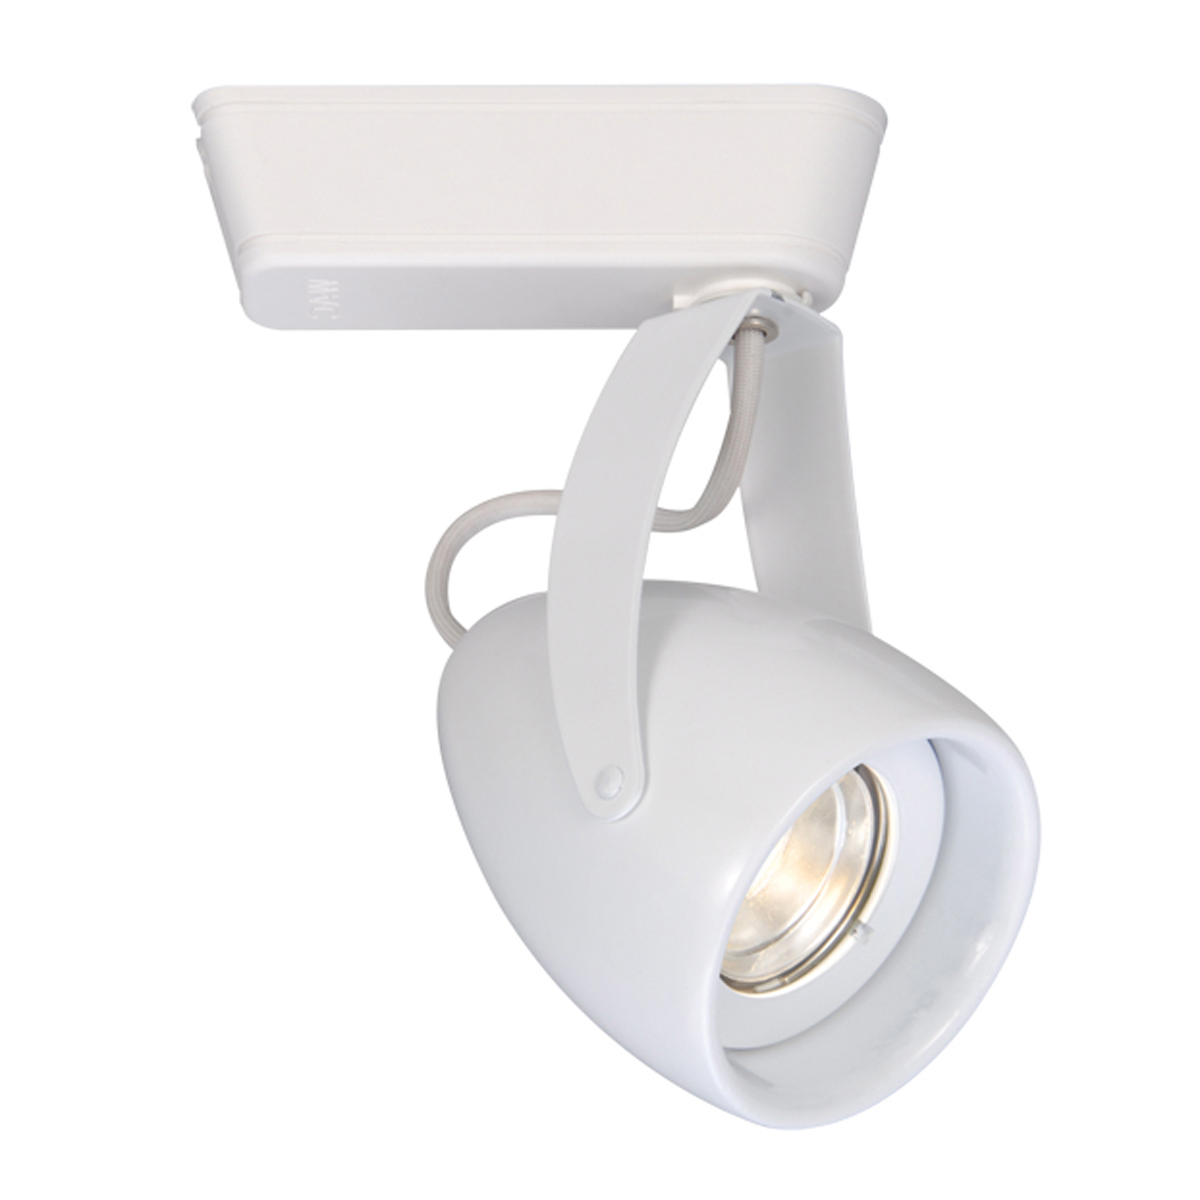 led wall mount from the tube architectural collection by wac lighting ds ws05 n40s gh